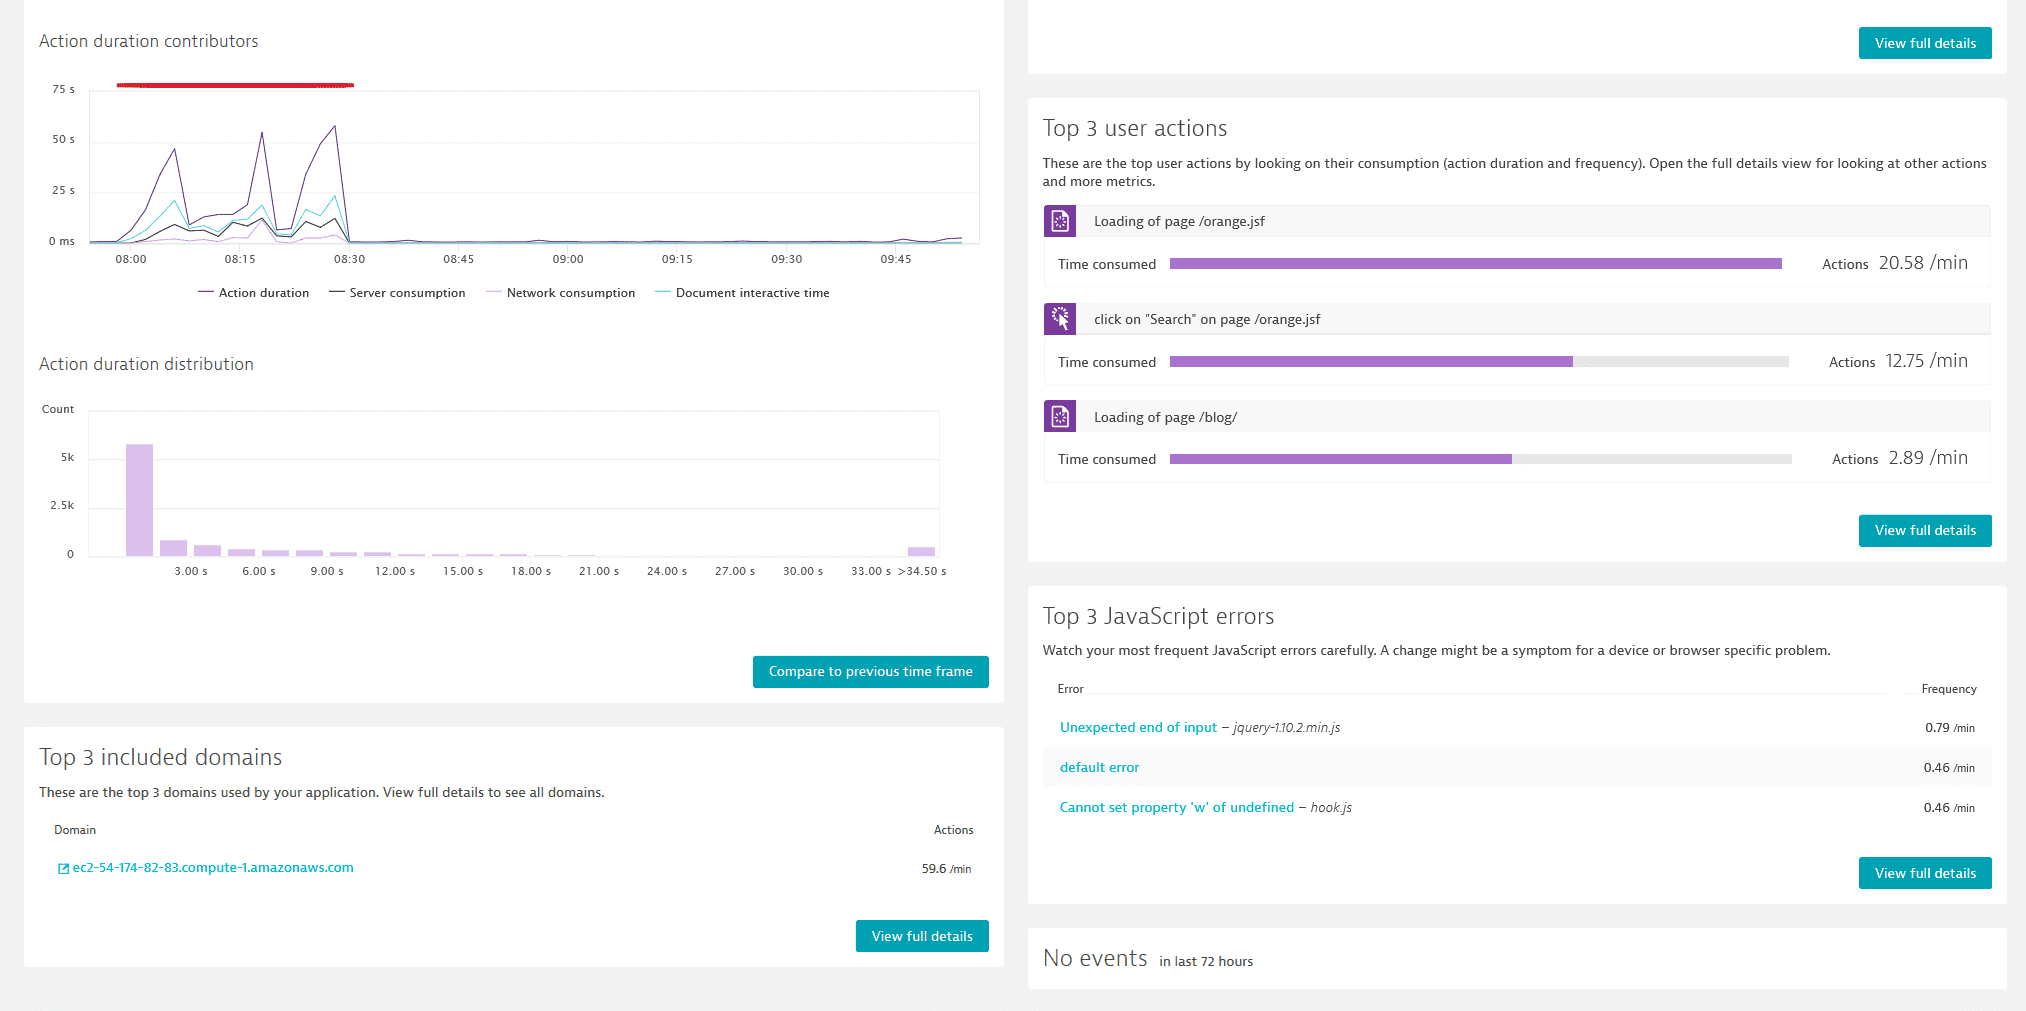 Dynatrace shows you the most relevant user actions, JavaScript errors and included domains too.